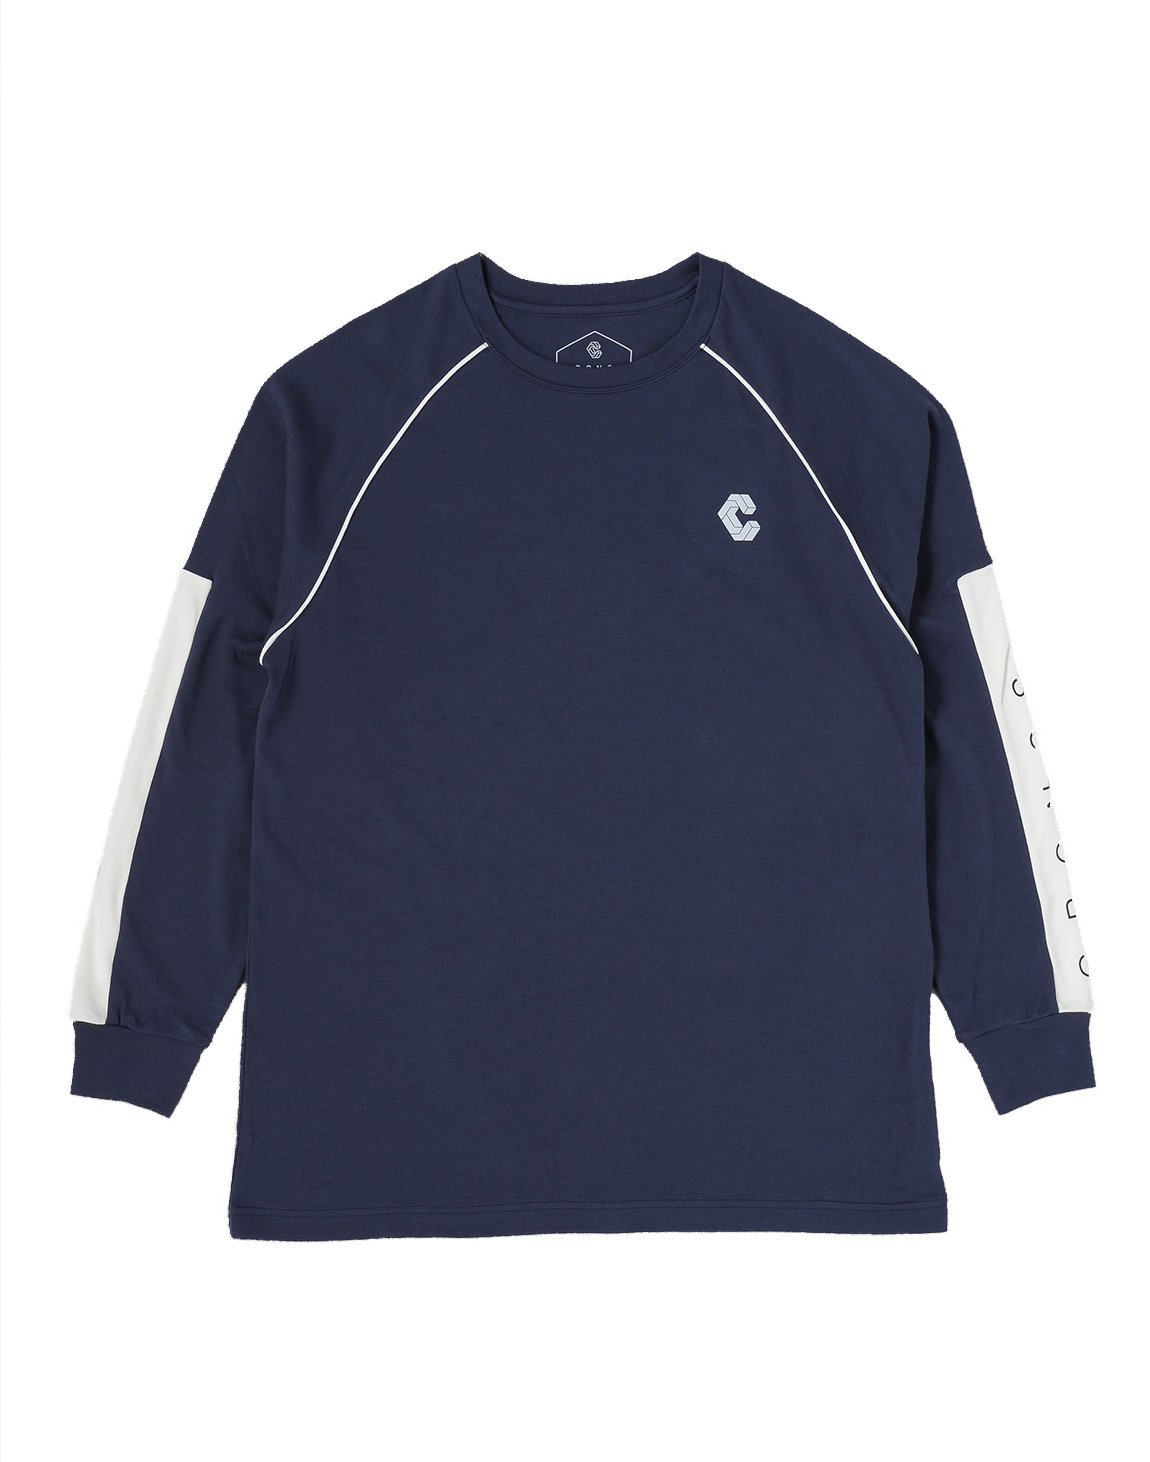 <img class='new_mark_img1' src='https://img.shop-pro.jp/img/new/icons55.gif' style='border:none;display:inline;margin:0px;padding:0px;width:auto;' />CRONOS ARM LOGO LONG SLEEVE【NAVY】